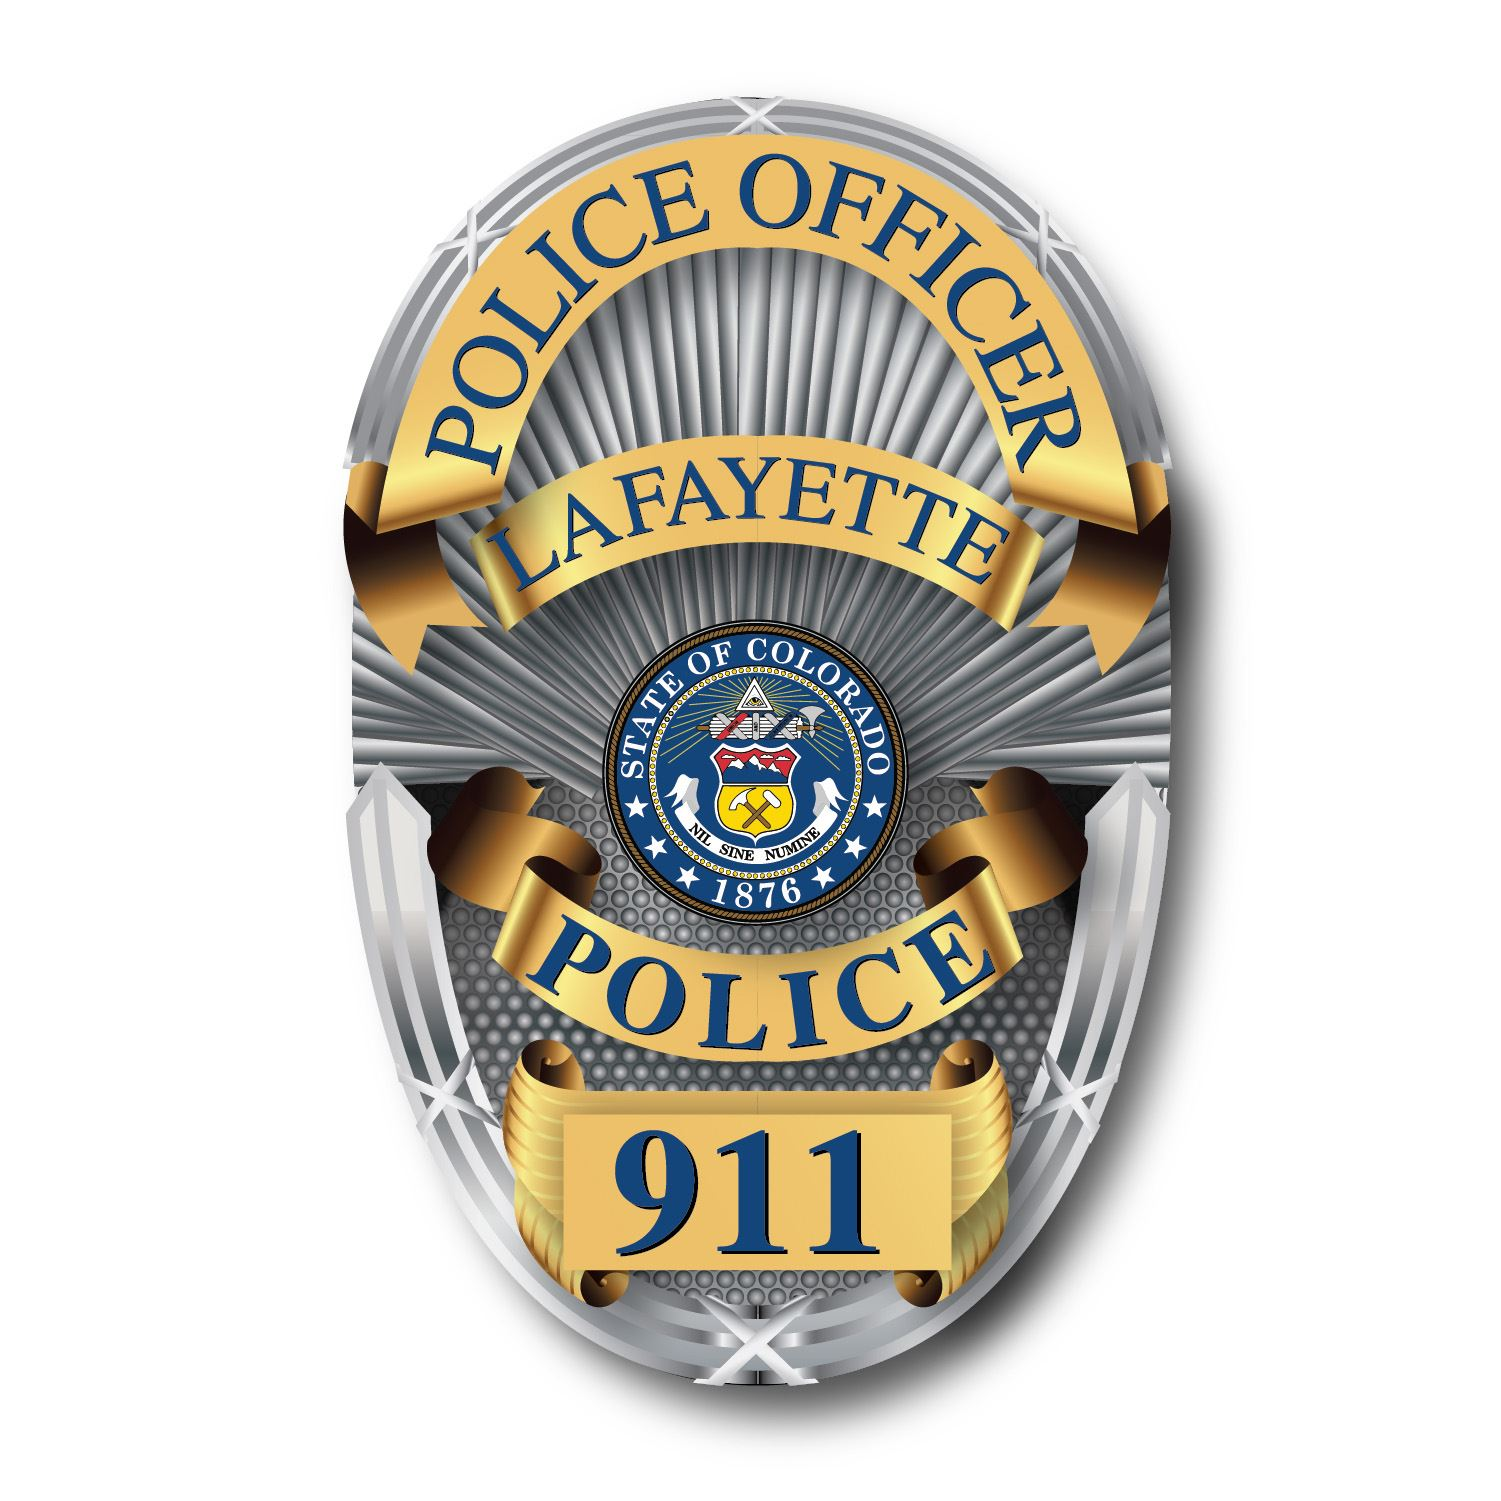 Police | Lafayette, CO - Official Website